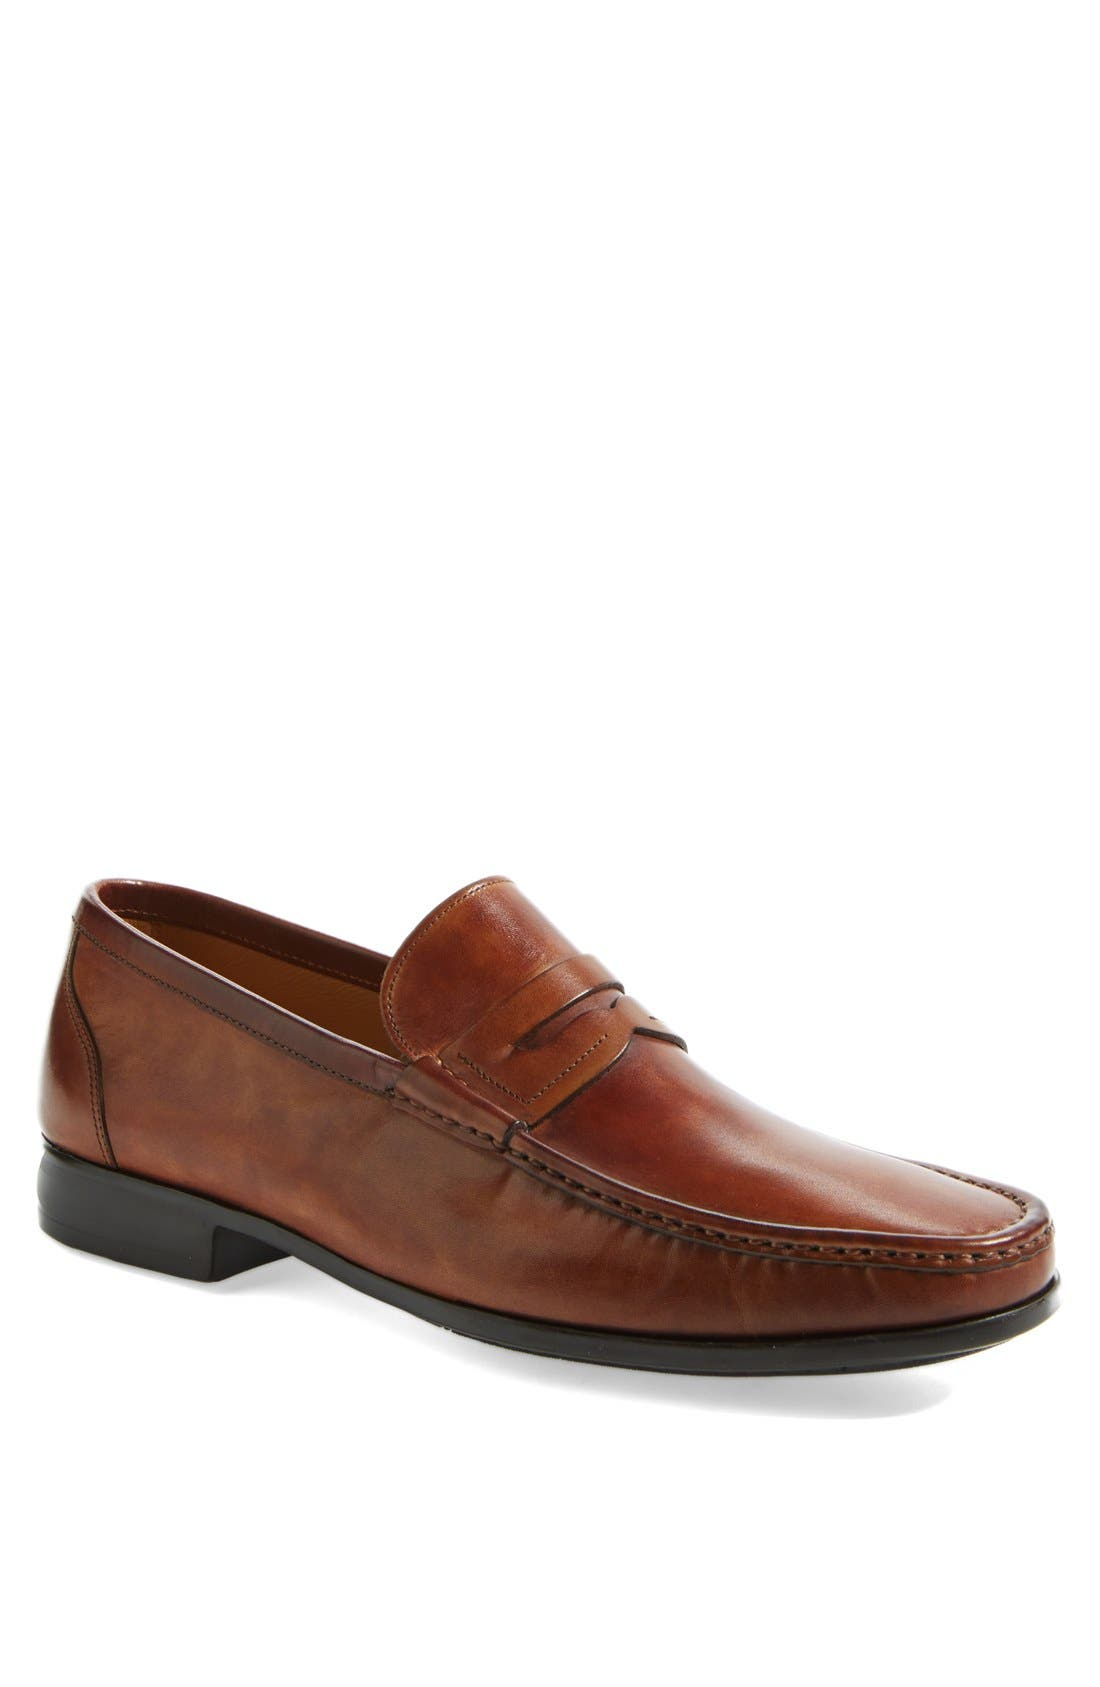 MAGNANNI Ares Penny Loafer